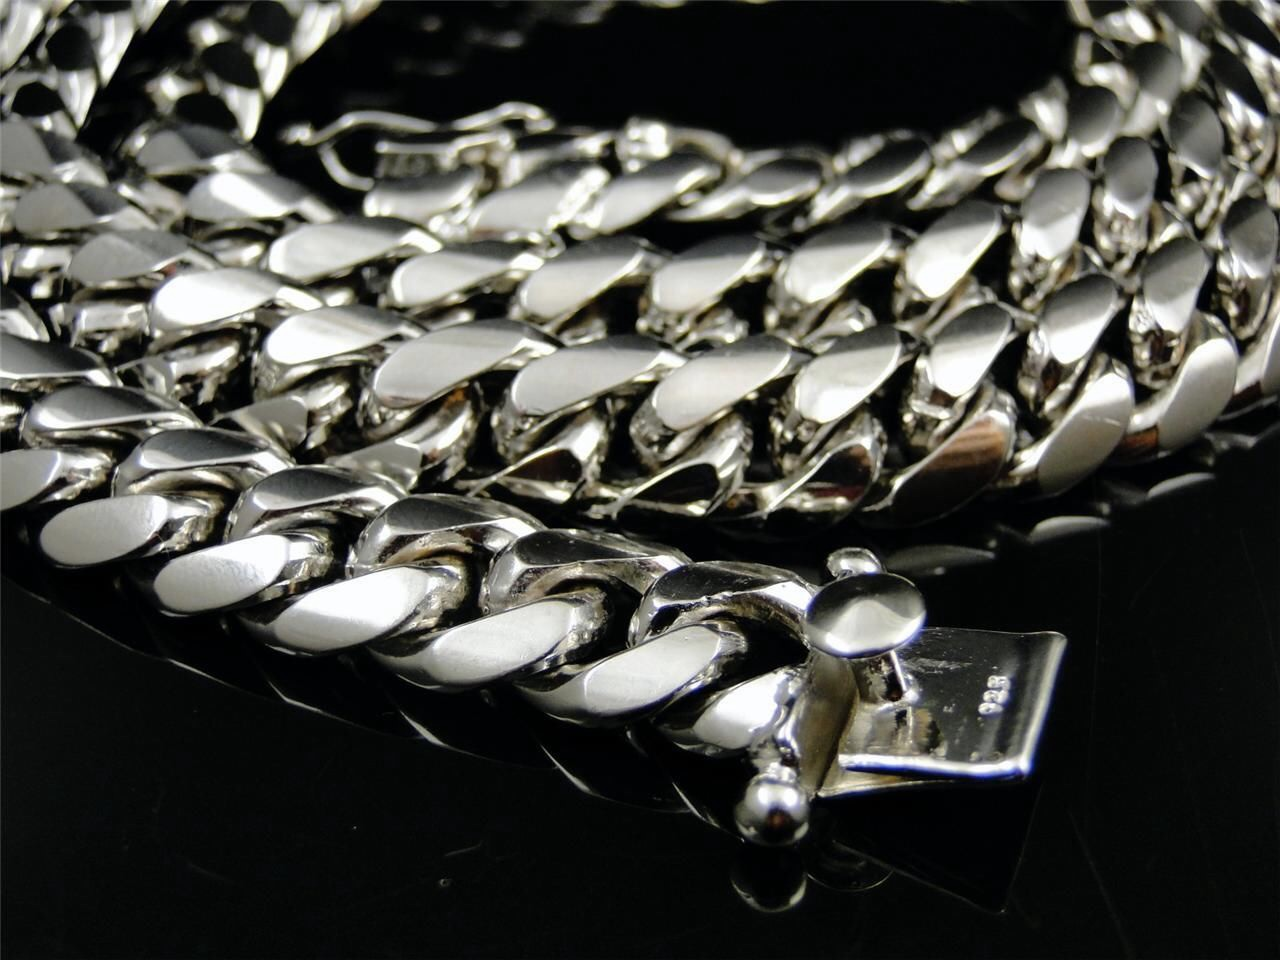 printed by tube sterling the products collar jewelry platinum grid daniel necklace christian tang silver